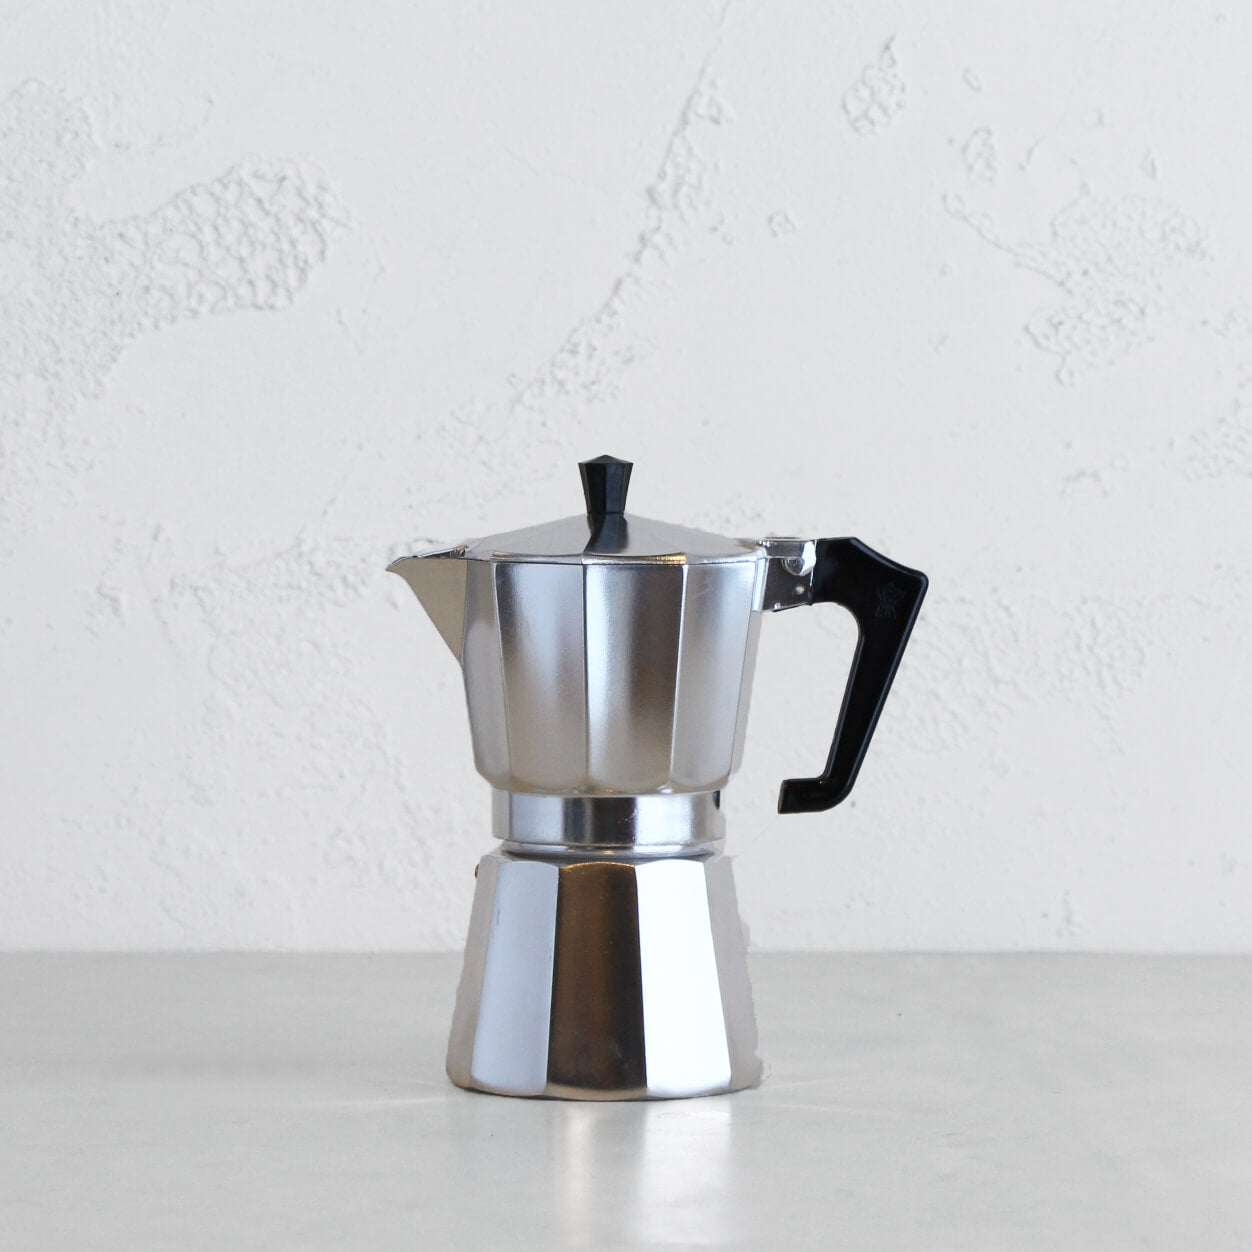 PEZZETTI ITALEXPRESS ITALIAN COFFEE MAKER  |  6 CUP  |  STEEL